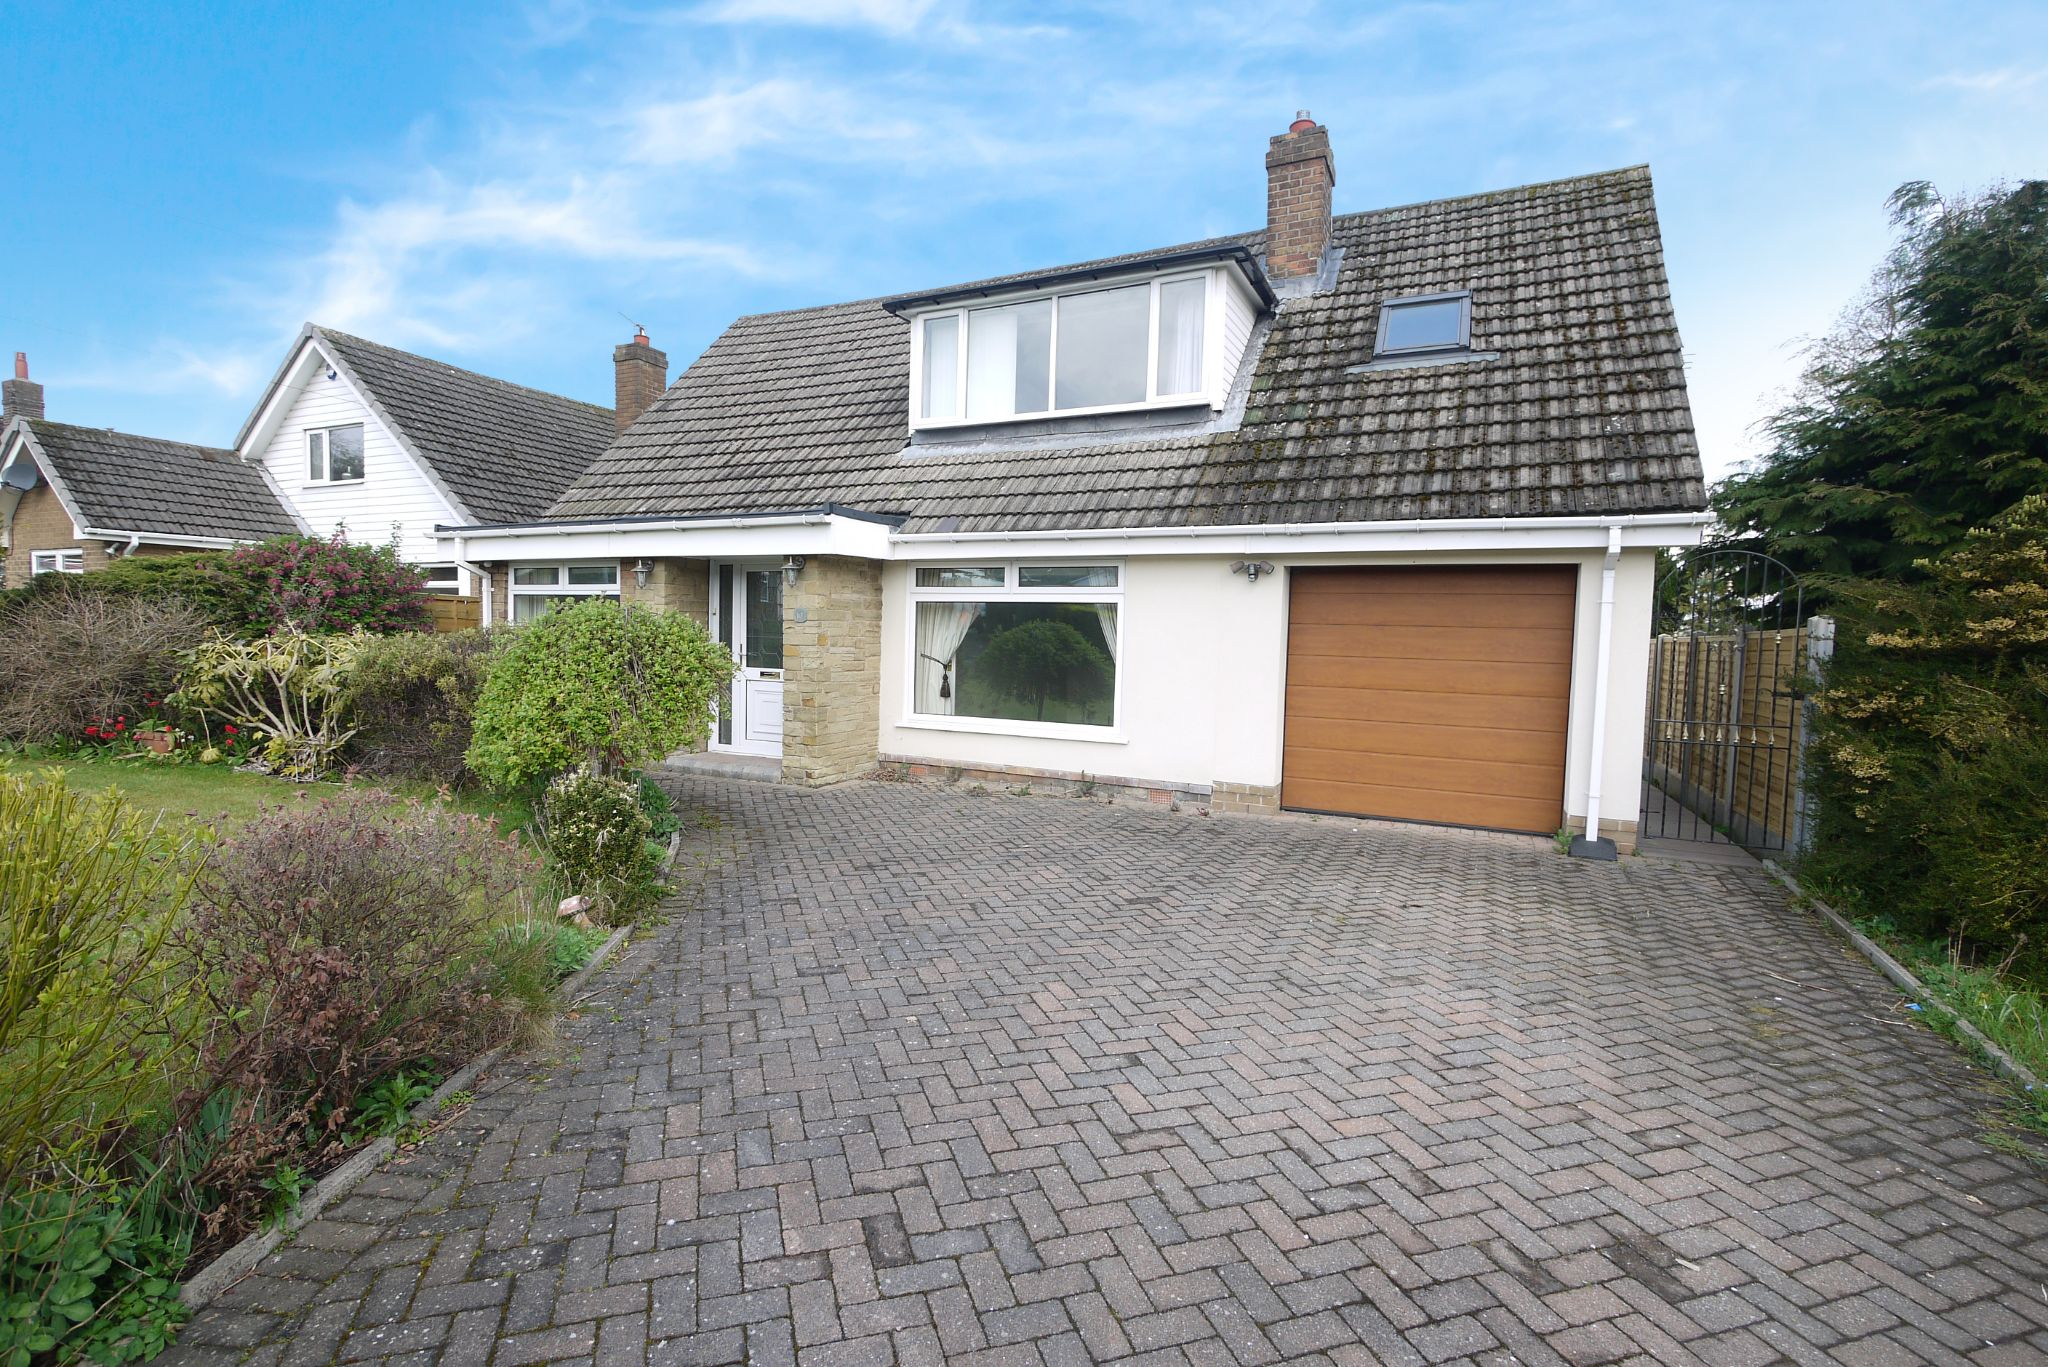 3 bedroom detached house SSTC in Brighouse - Photograph 17.